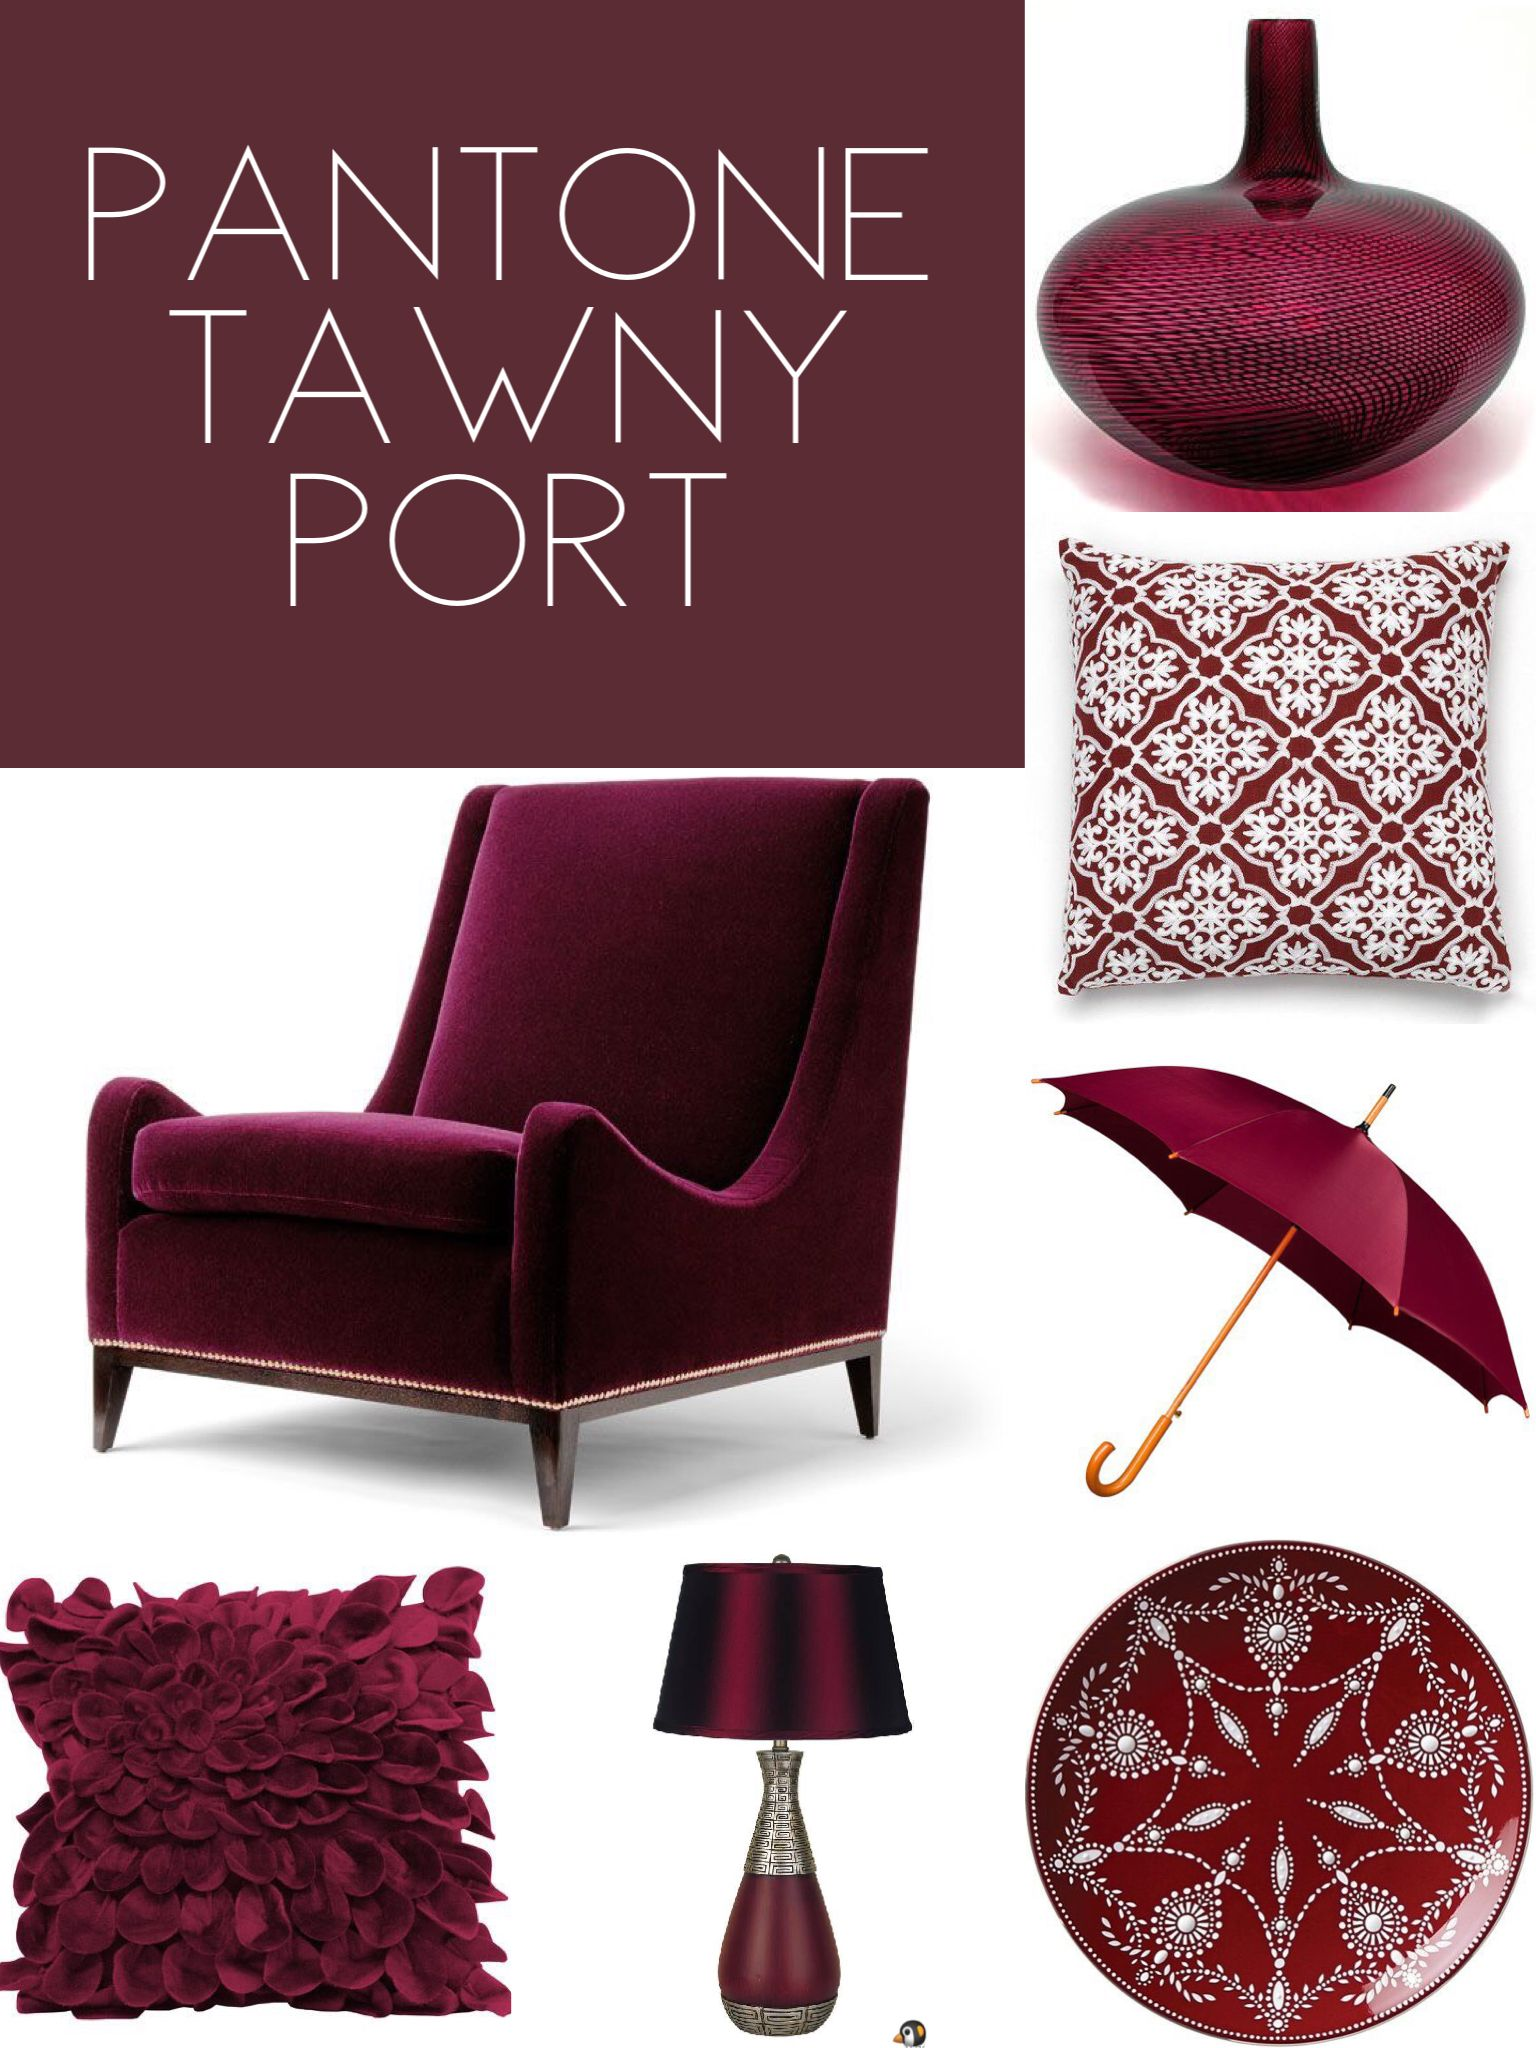 Pantone Tawny Port Home Decor Pantone Color Pallets